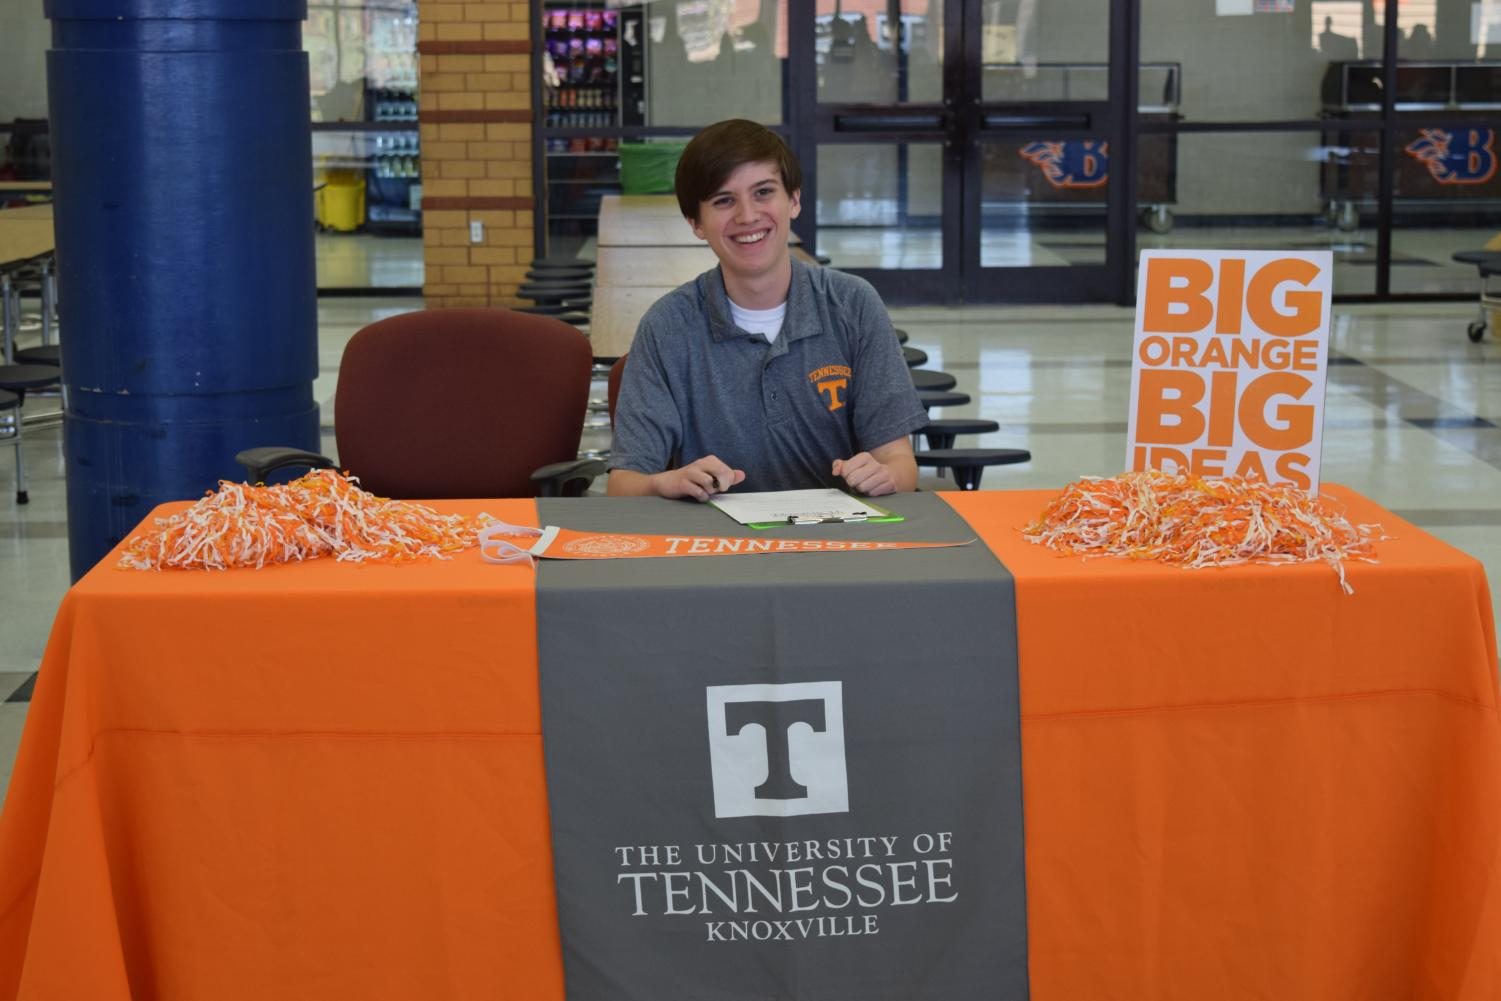 Richard+Arning+will+attend+the+University+of+Tennessee%2C+Knoxville+in+the+fall.